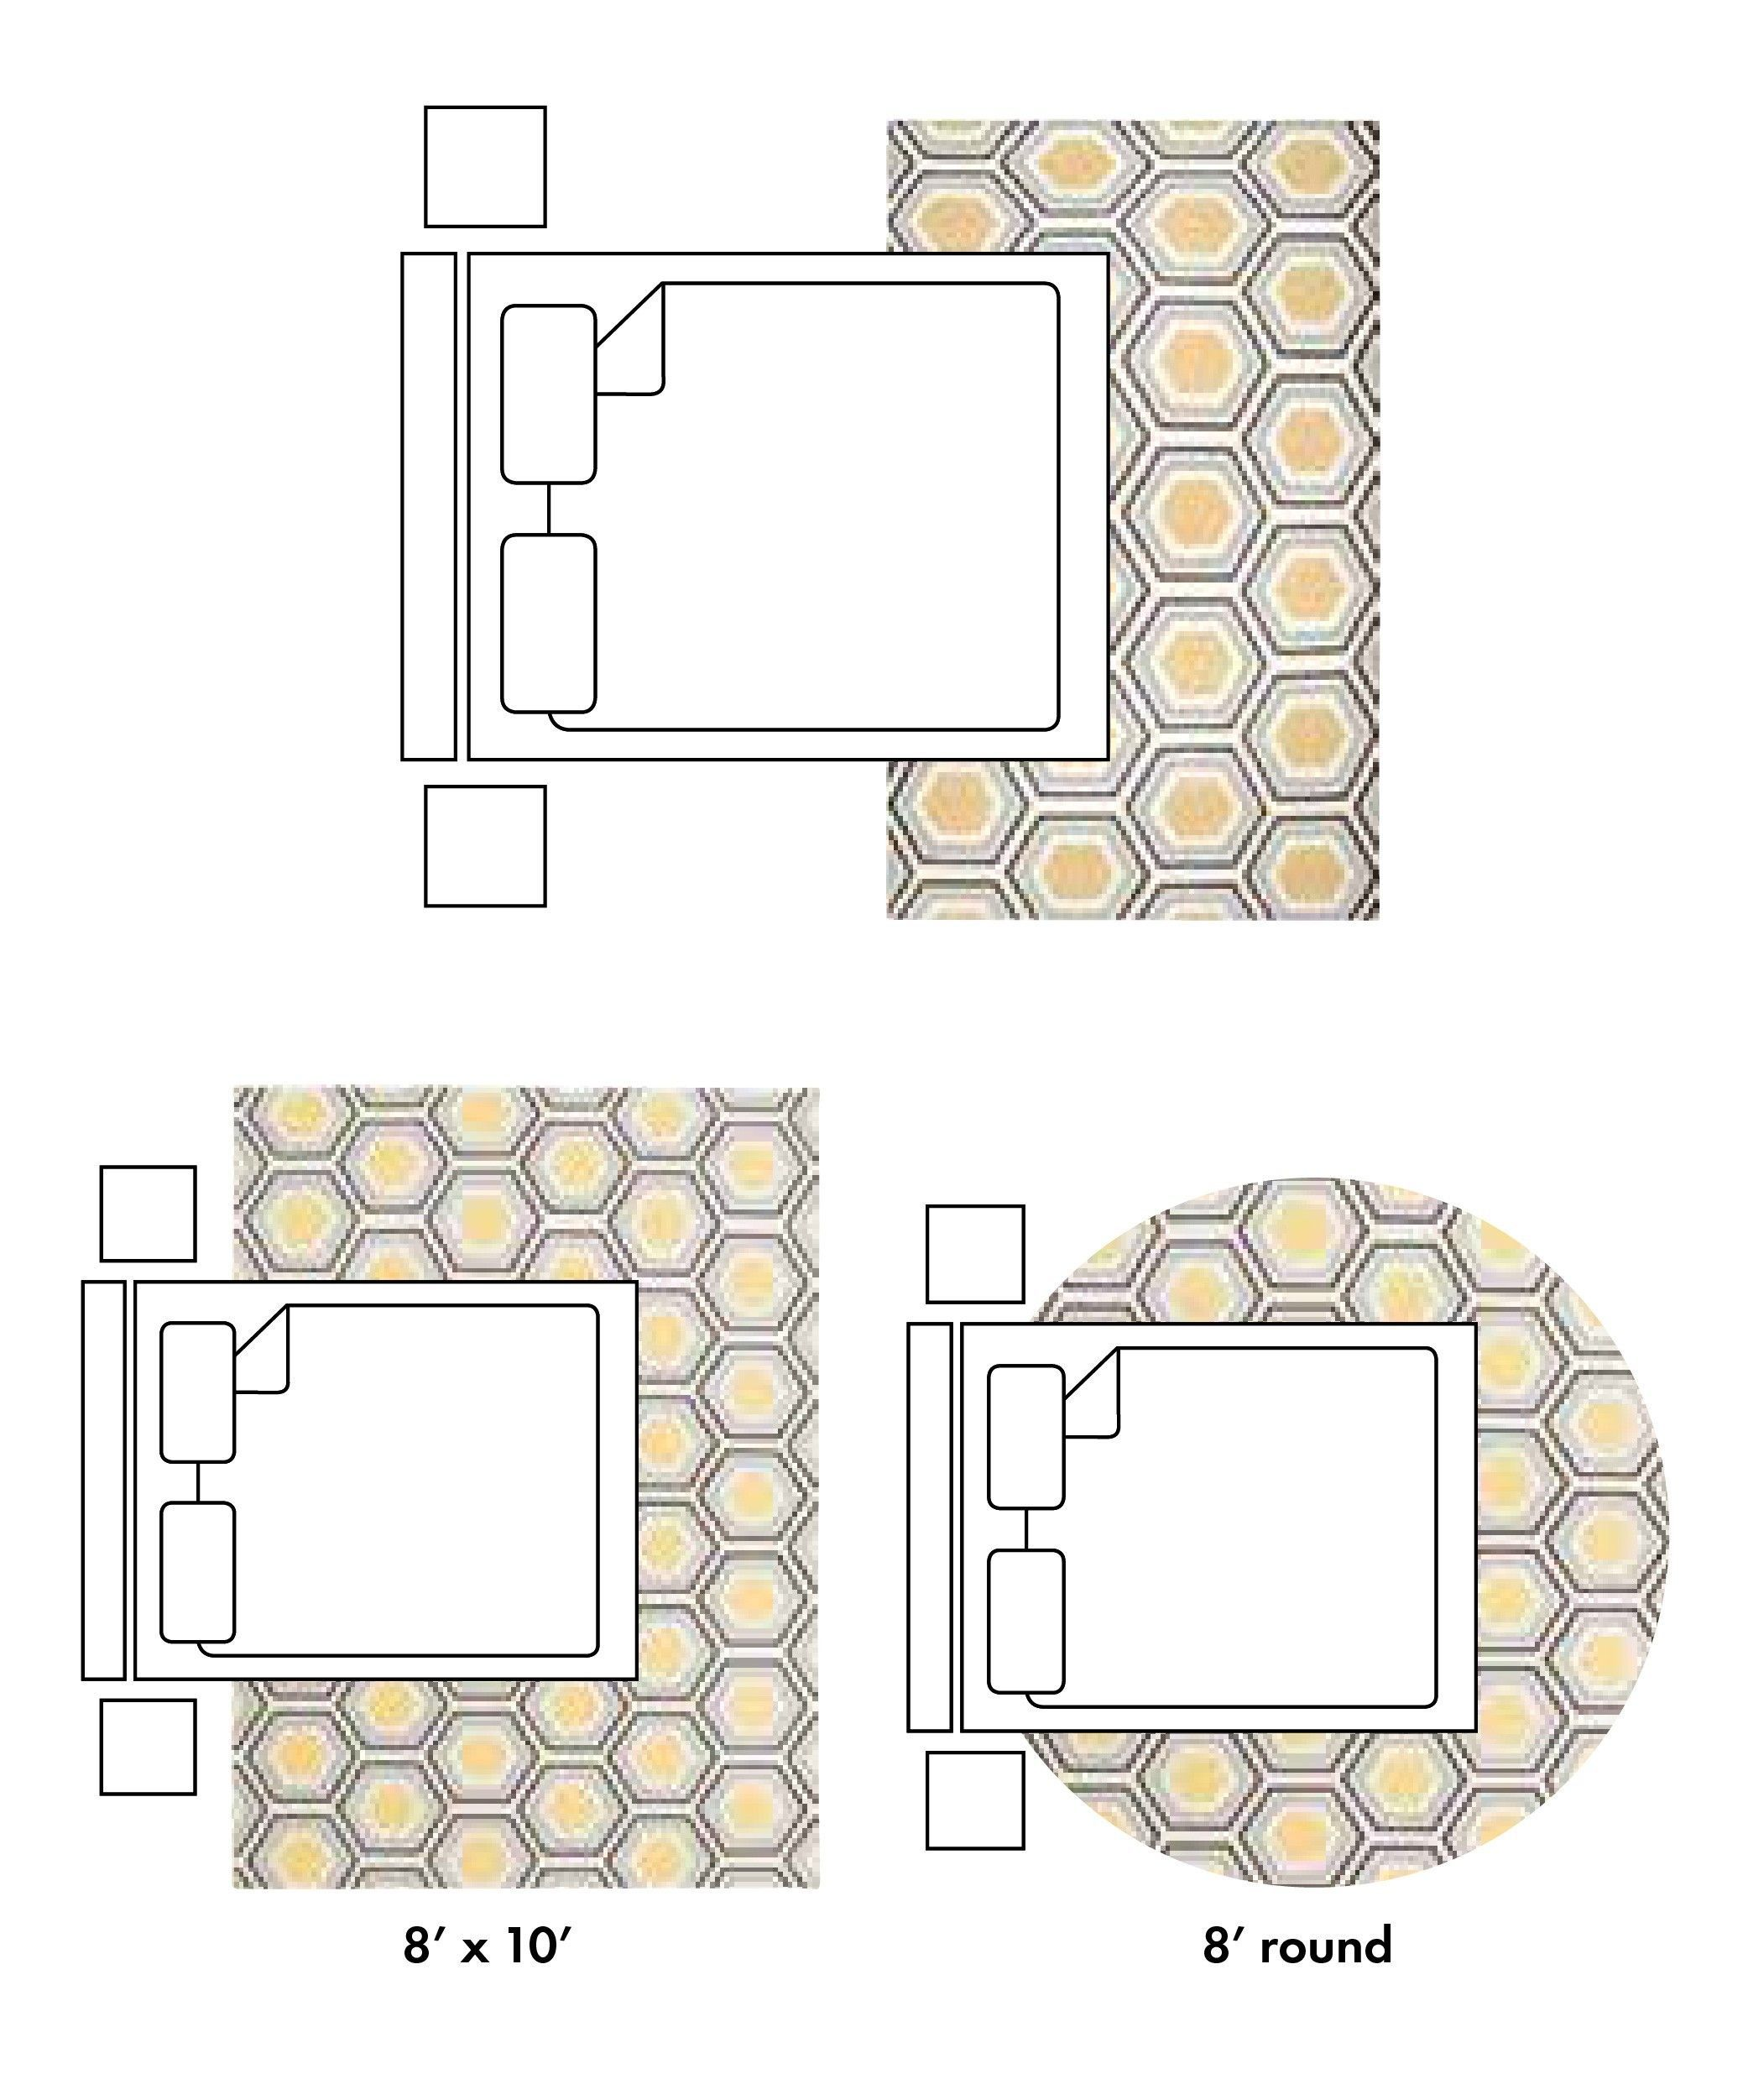 How To Pick The Perfect Rug Sizes Placing Types Perfect Pick Placing Roundcarpetbedroombeds R In 2020 Rug Under Bed Bedroom Rug Placement Standard Rug Sizes